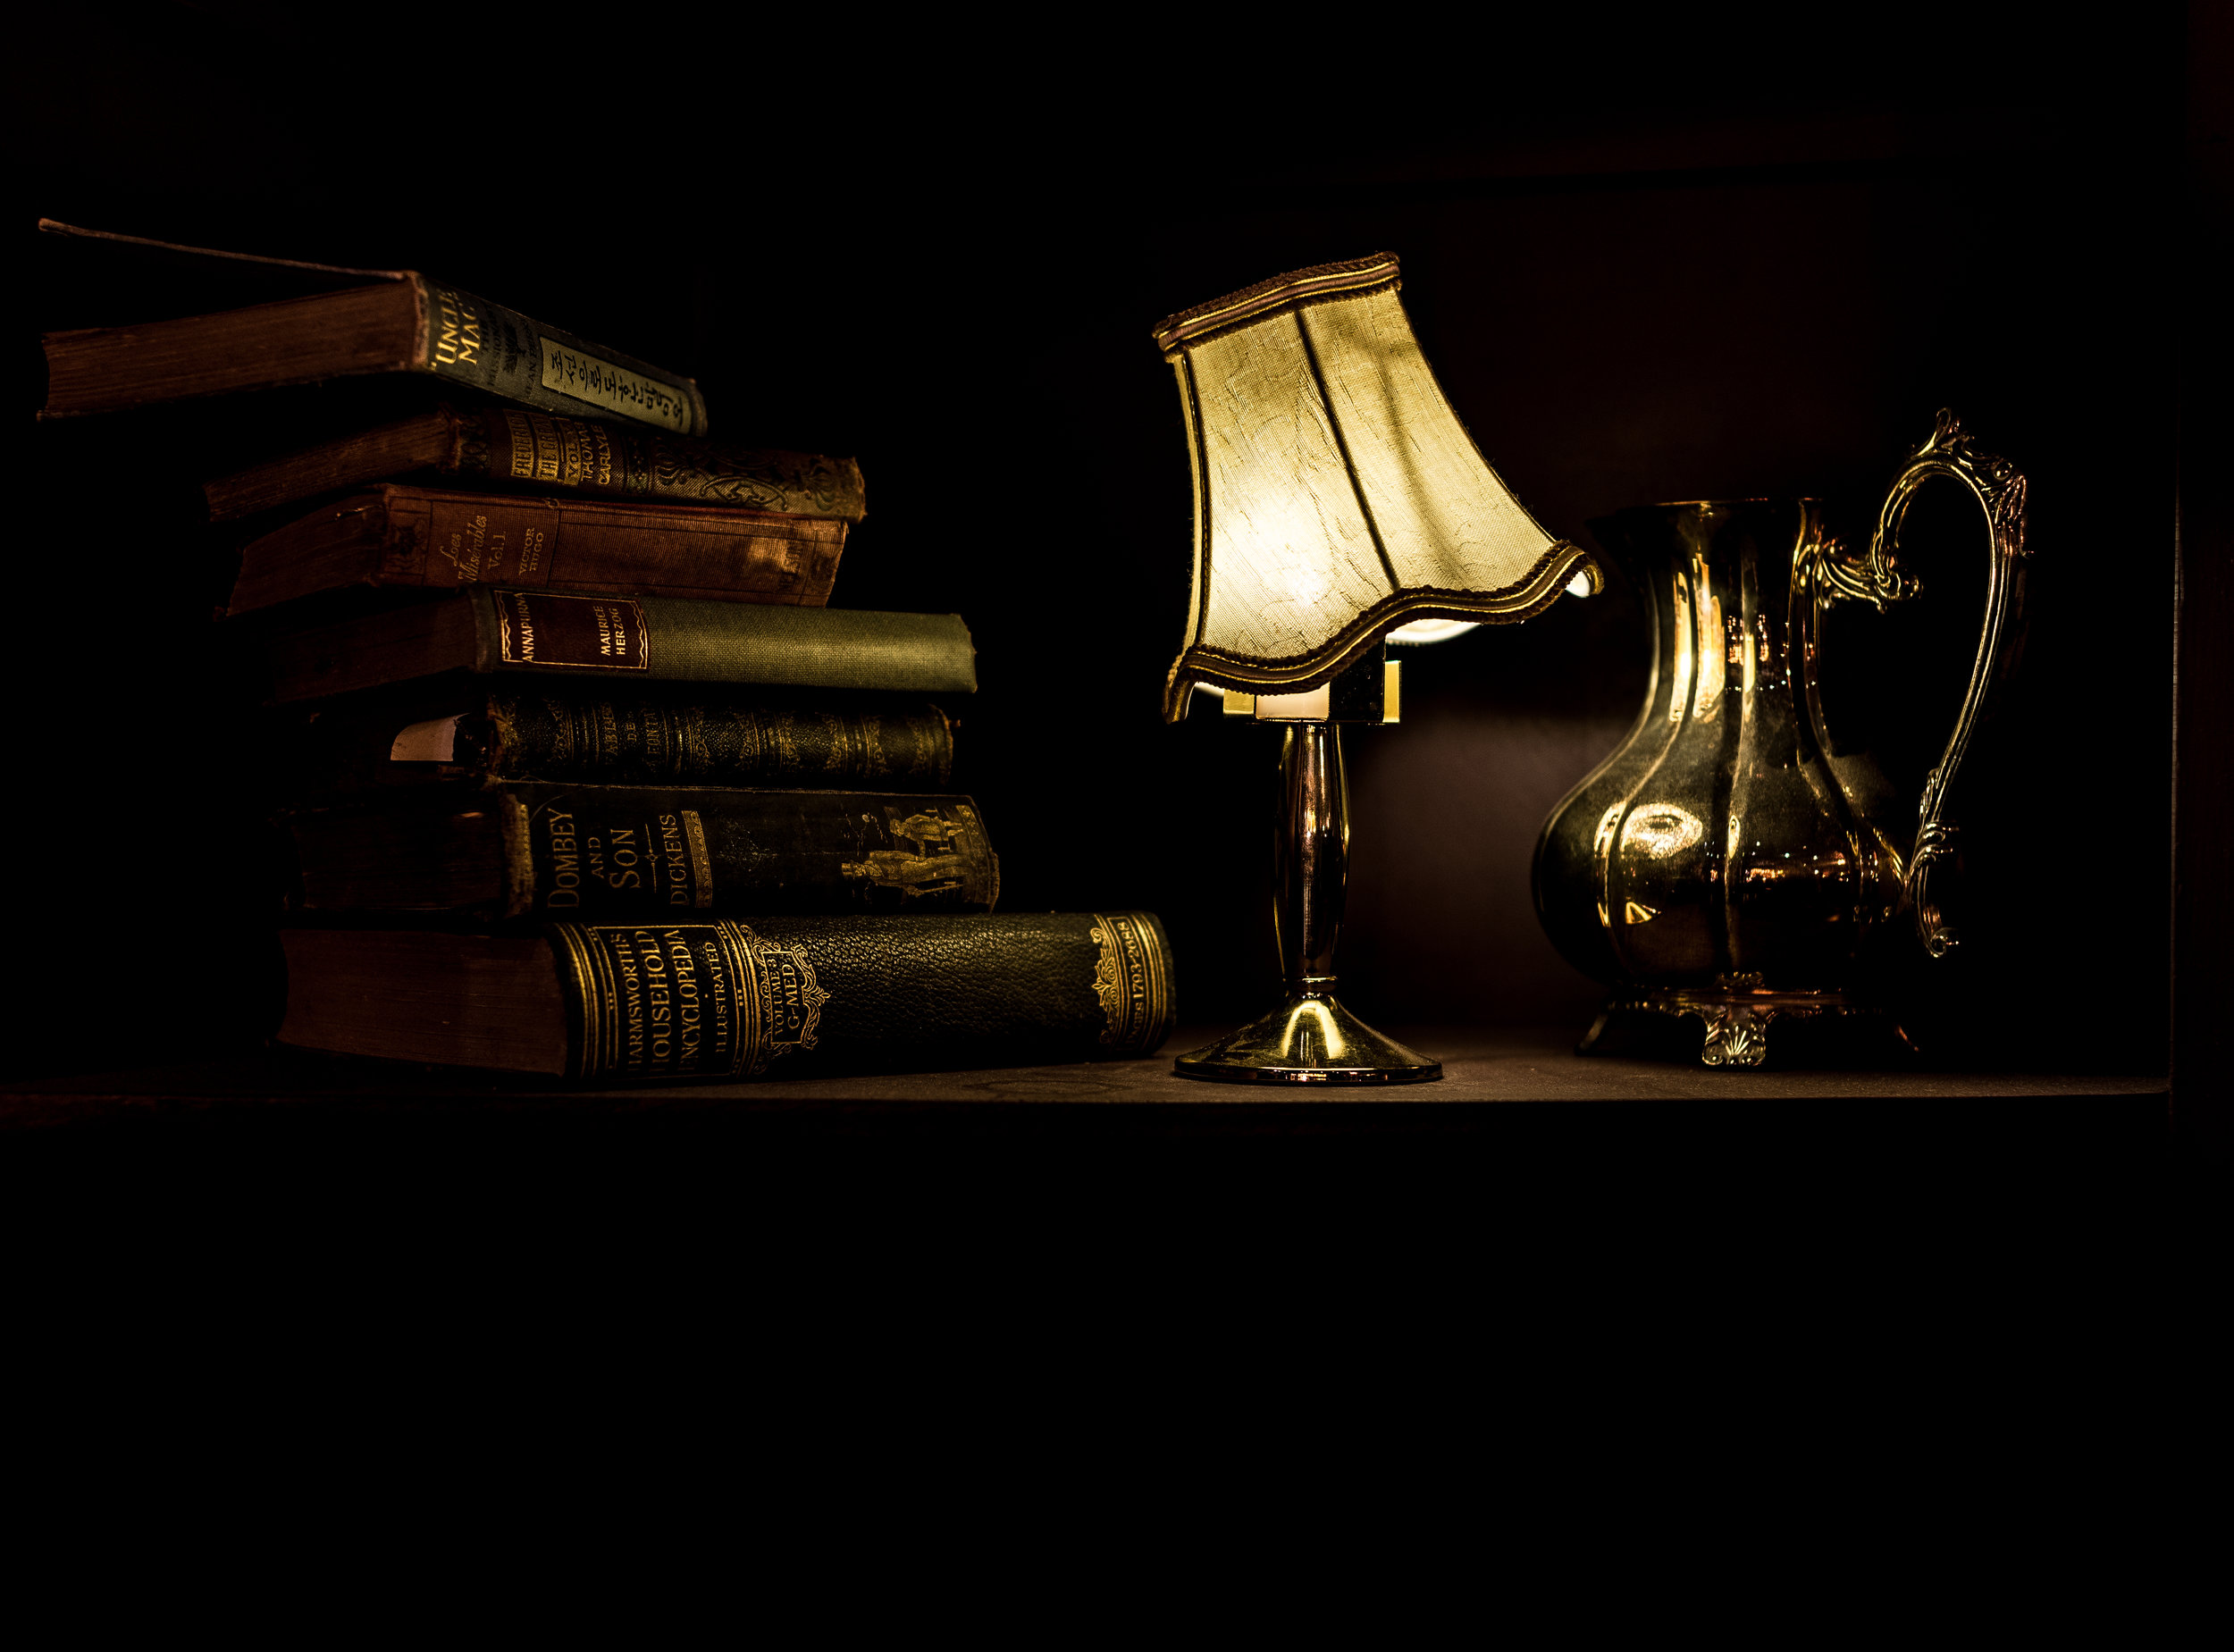 Library - In the Library, you will find a collection of fictitious works that should inspire the mood and themes of the World of Darkness.